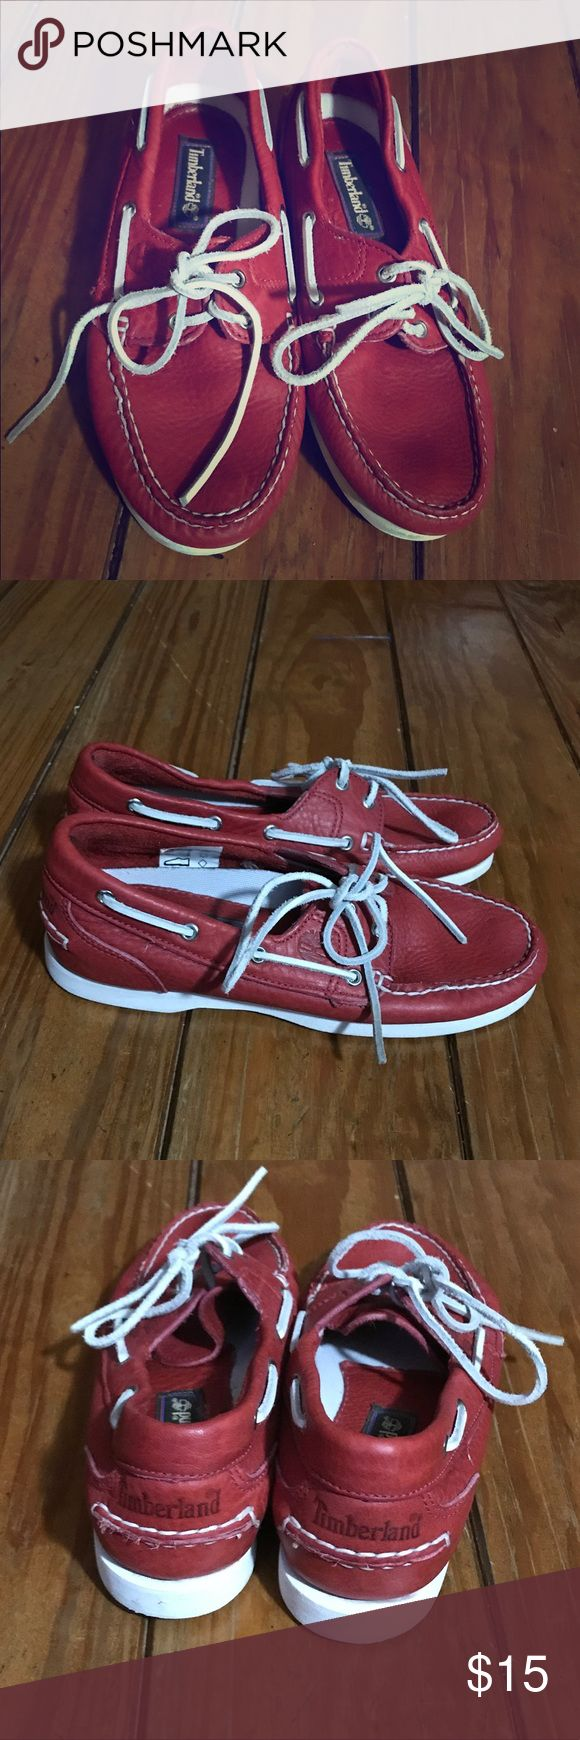 Timberland red leather boat shoes Awesome Timberland boat shoes in excellent used condition. Deep bold red in color with white accents. Worn once. Timberland Shoes Flats & Loafers